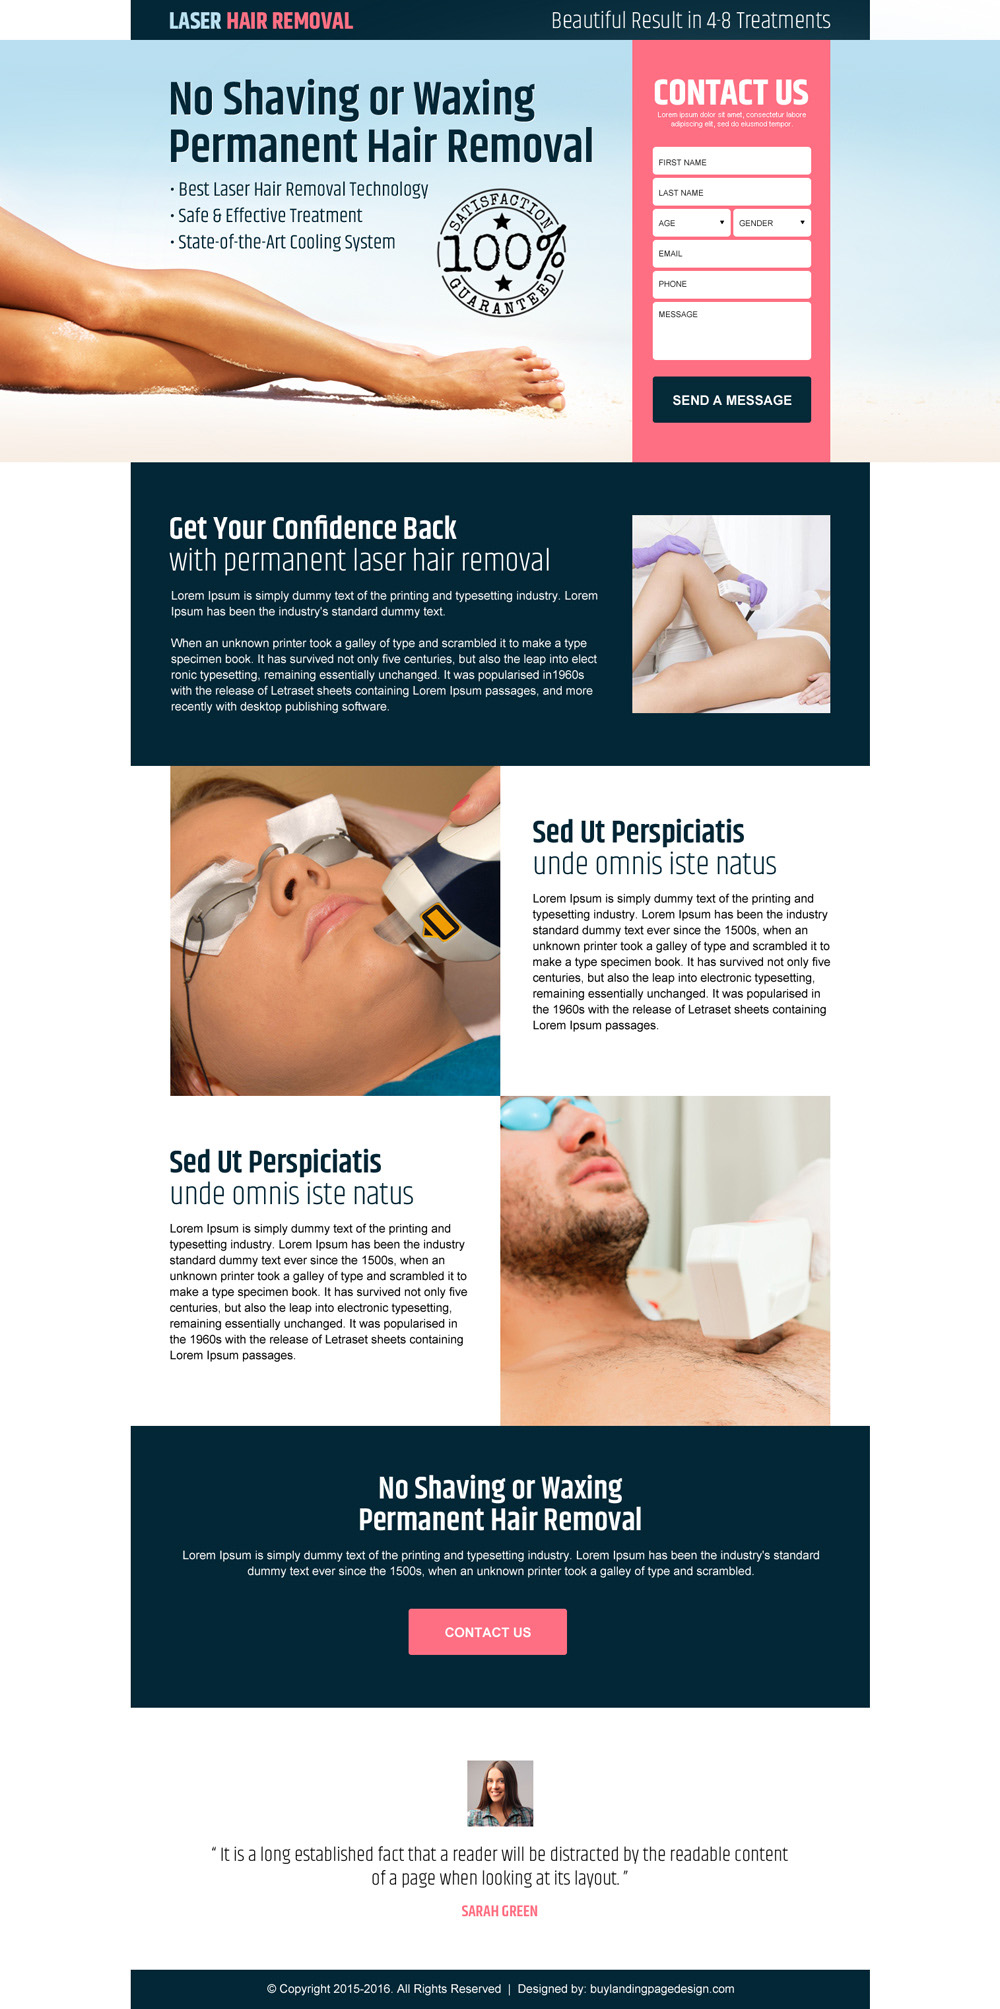 laser-hair-removal-service-lead-generation-converting-landing-page-design-001